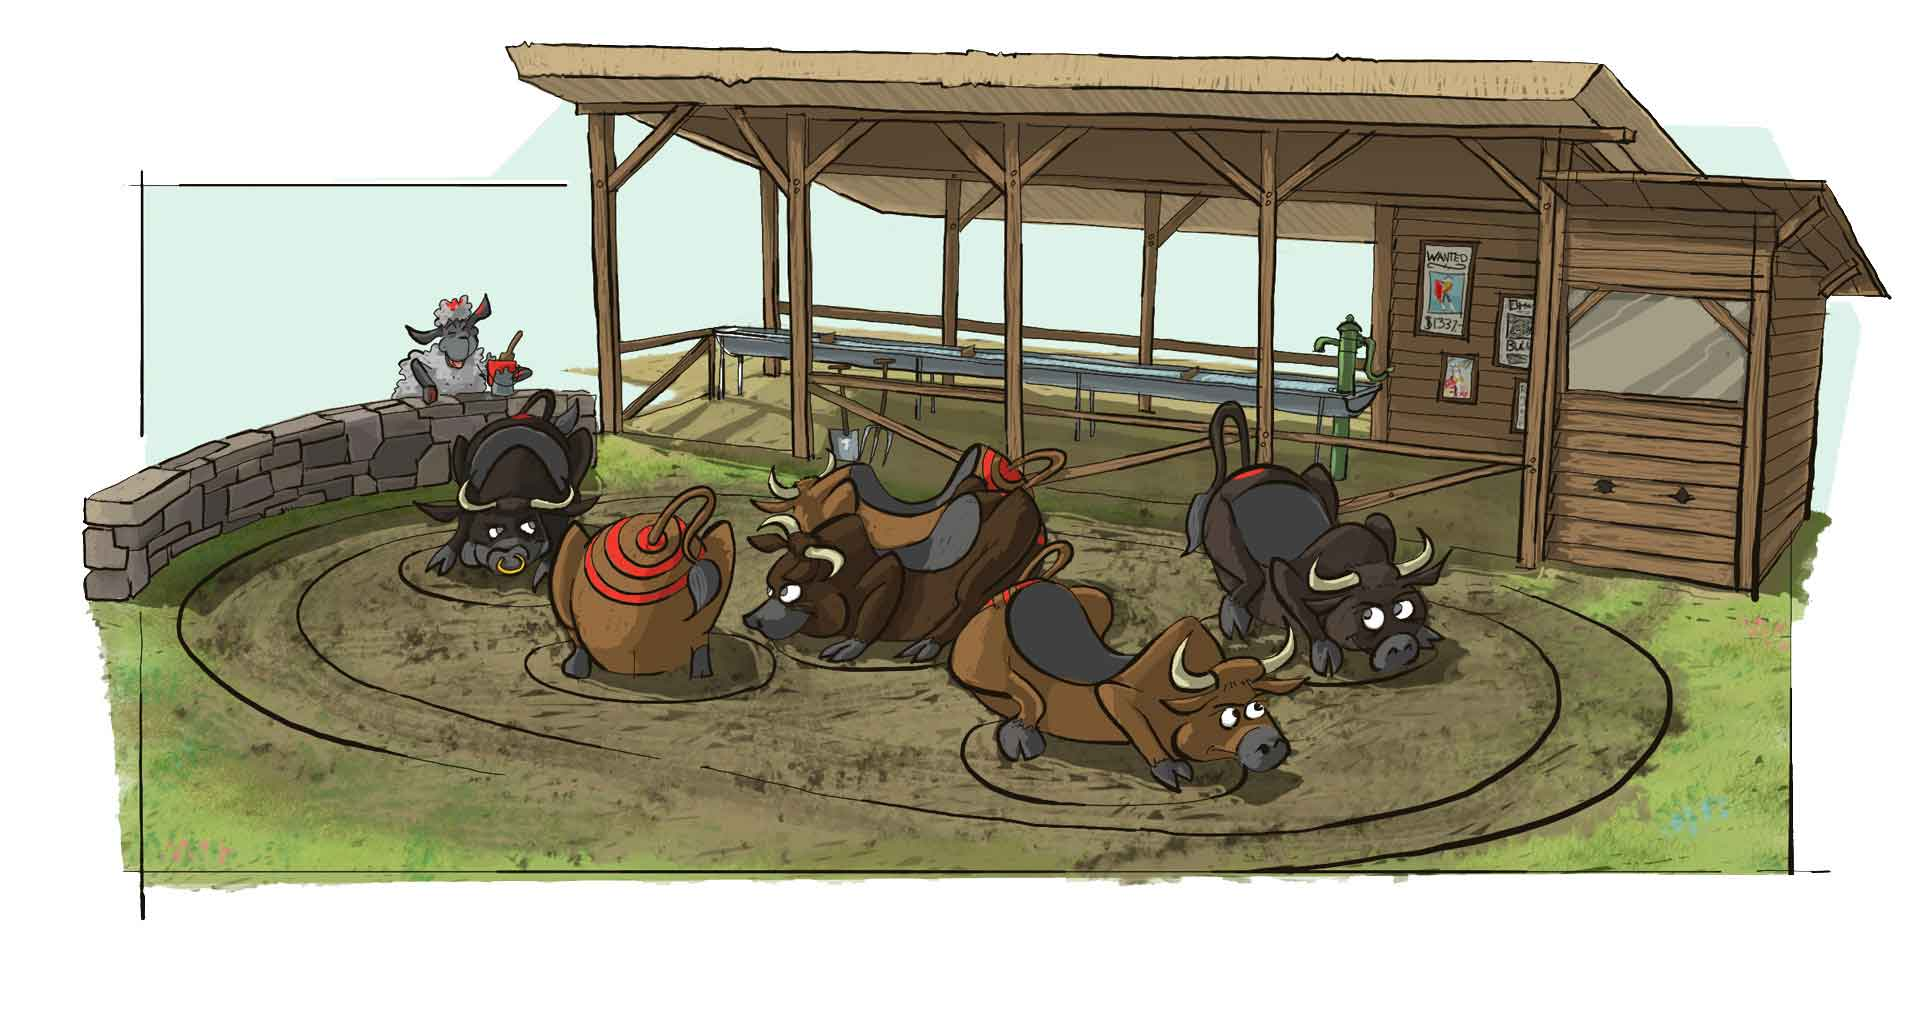 The artist impression of the bull attraction at Djurs Sommerland